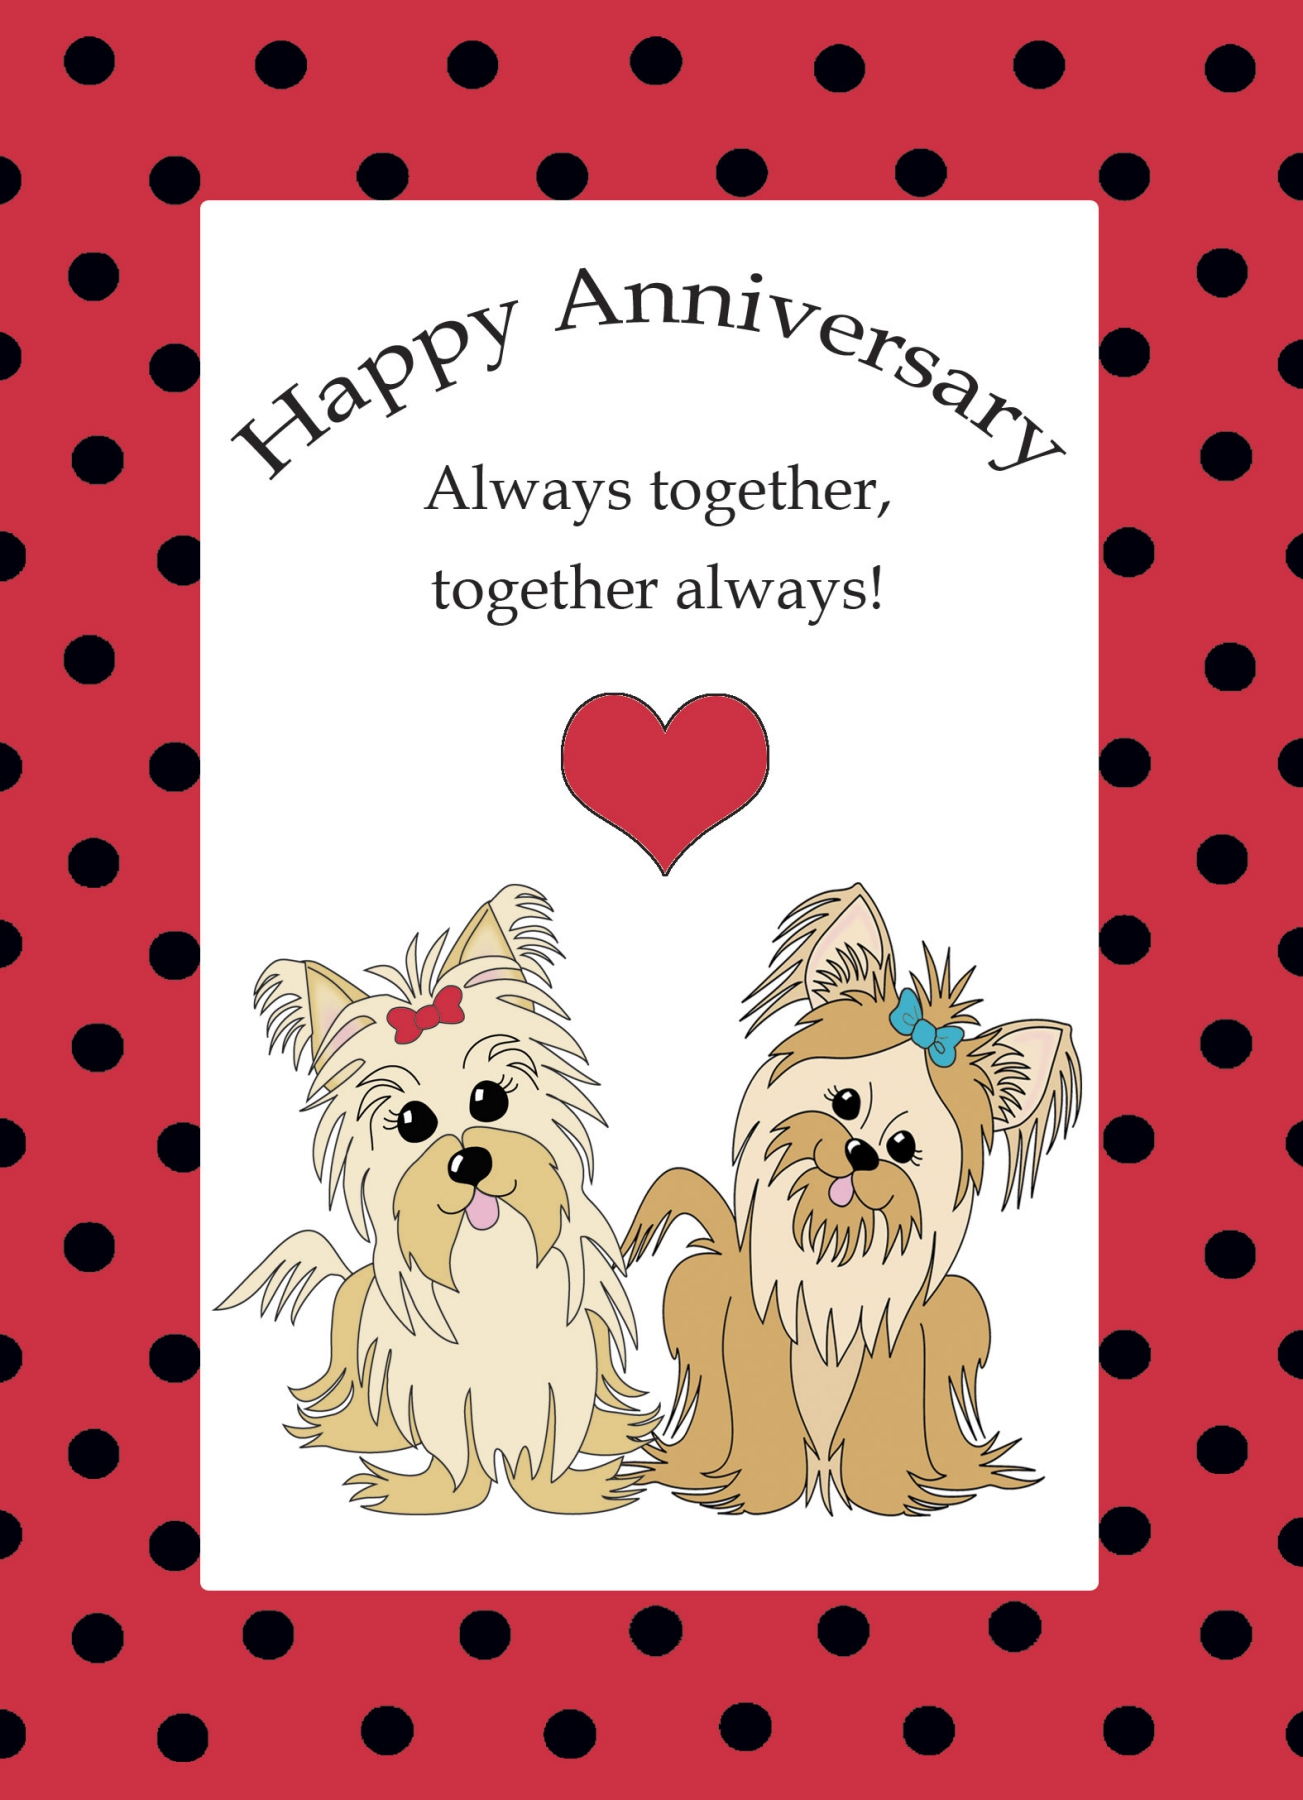 Have You Married MrMrs Right Or Wrong – Printable Anniversary Cards for Her